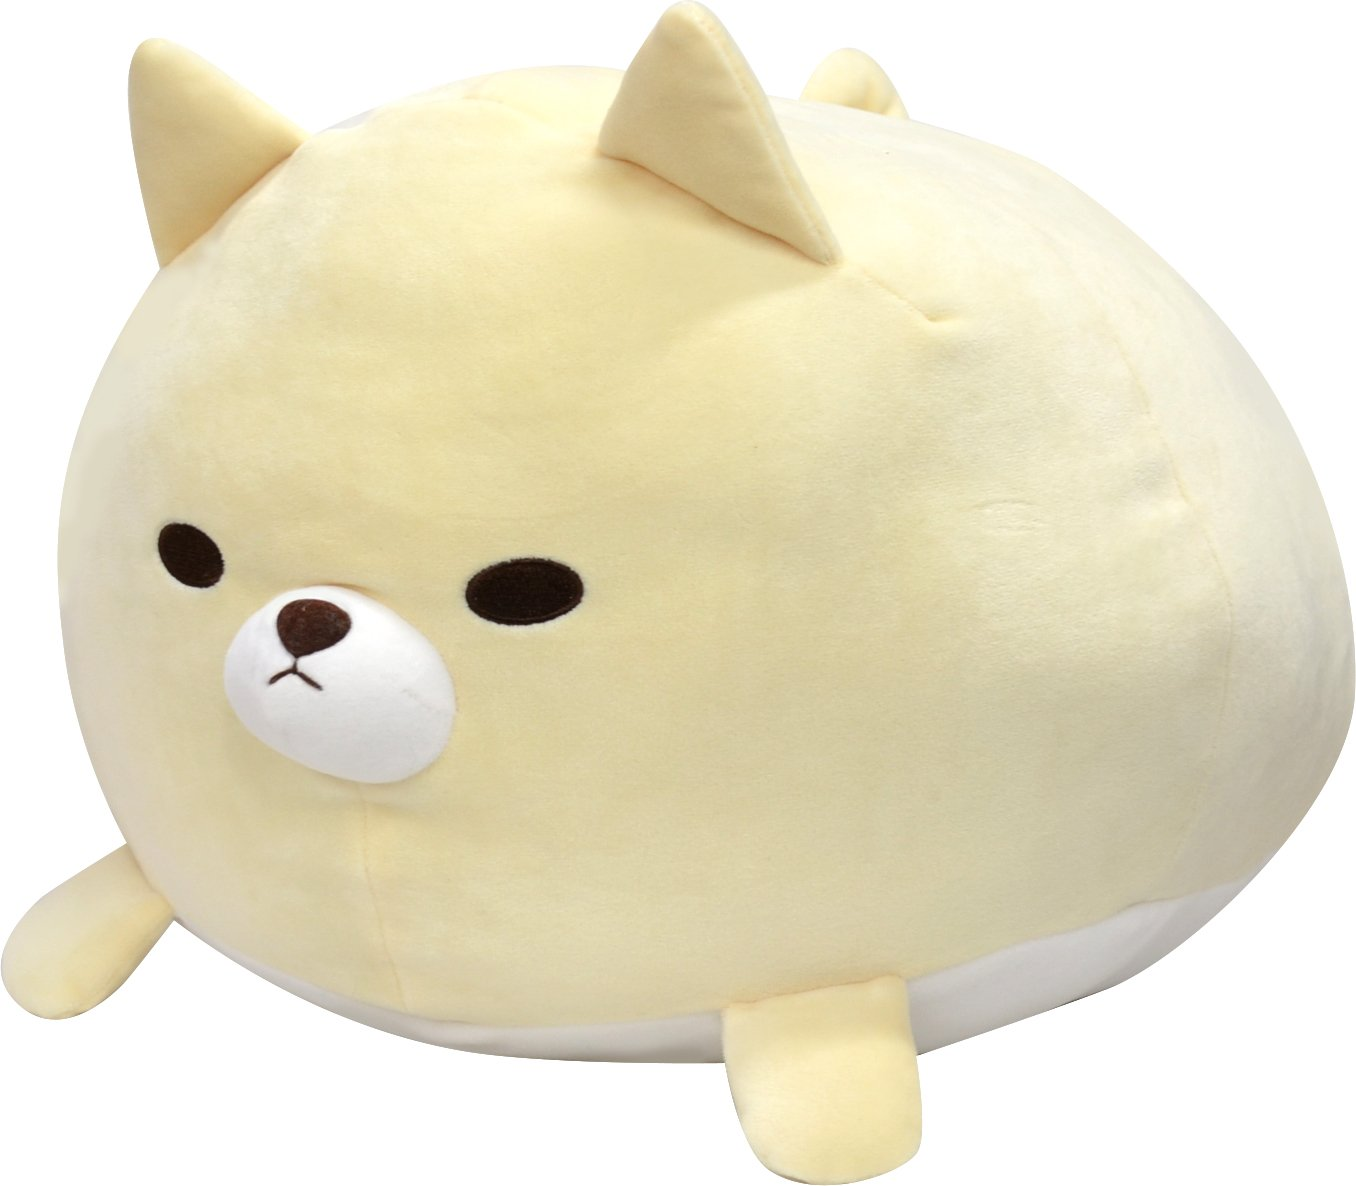 Tawaraken Fuwaitchichi  Akitainu  Cream dog  BIG Plush Stuffed Animals  40~45cm  Imported from Japan Yamani